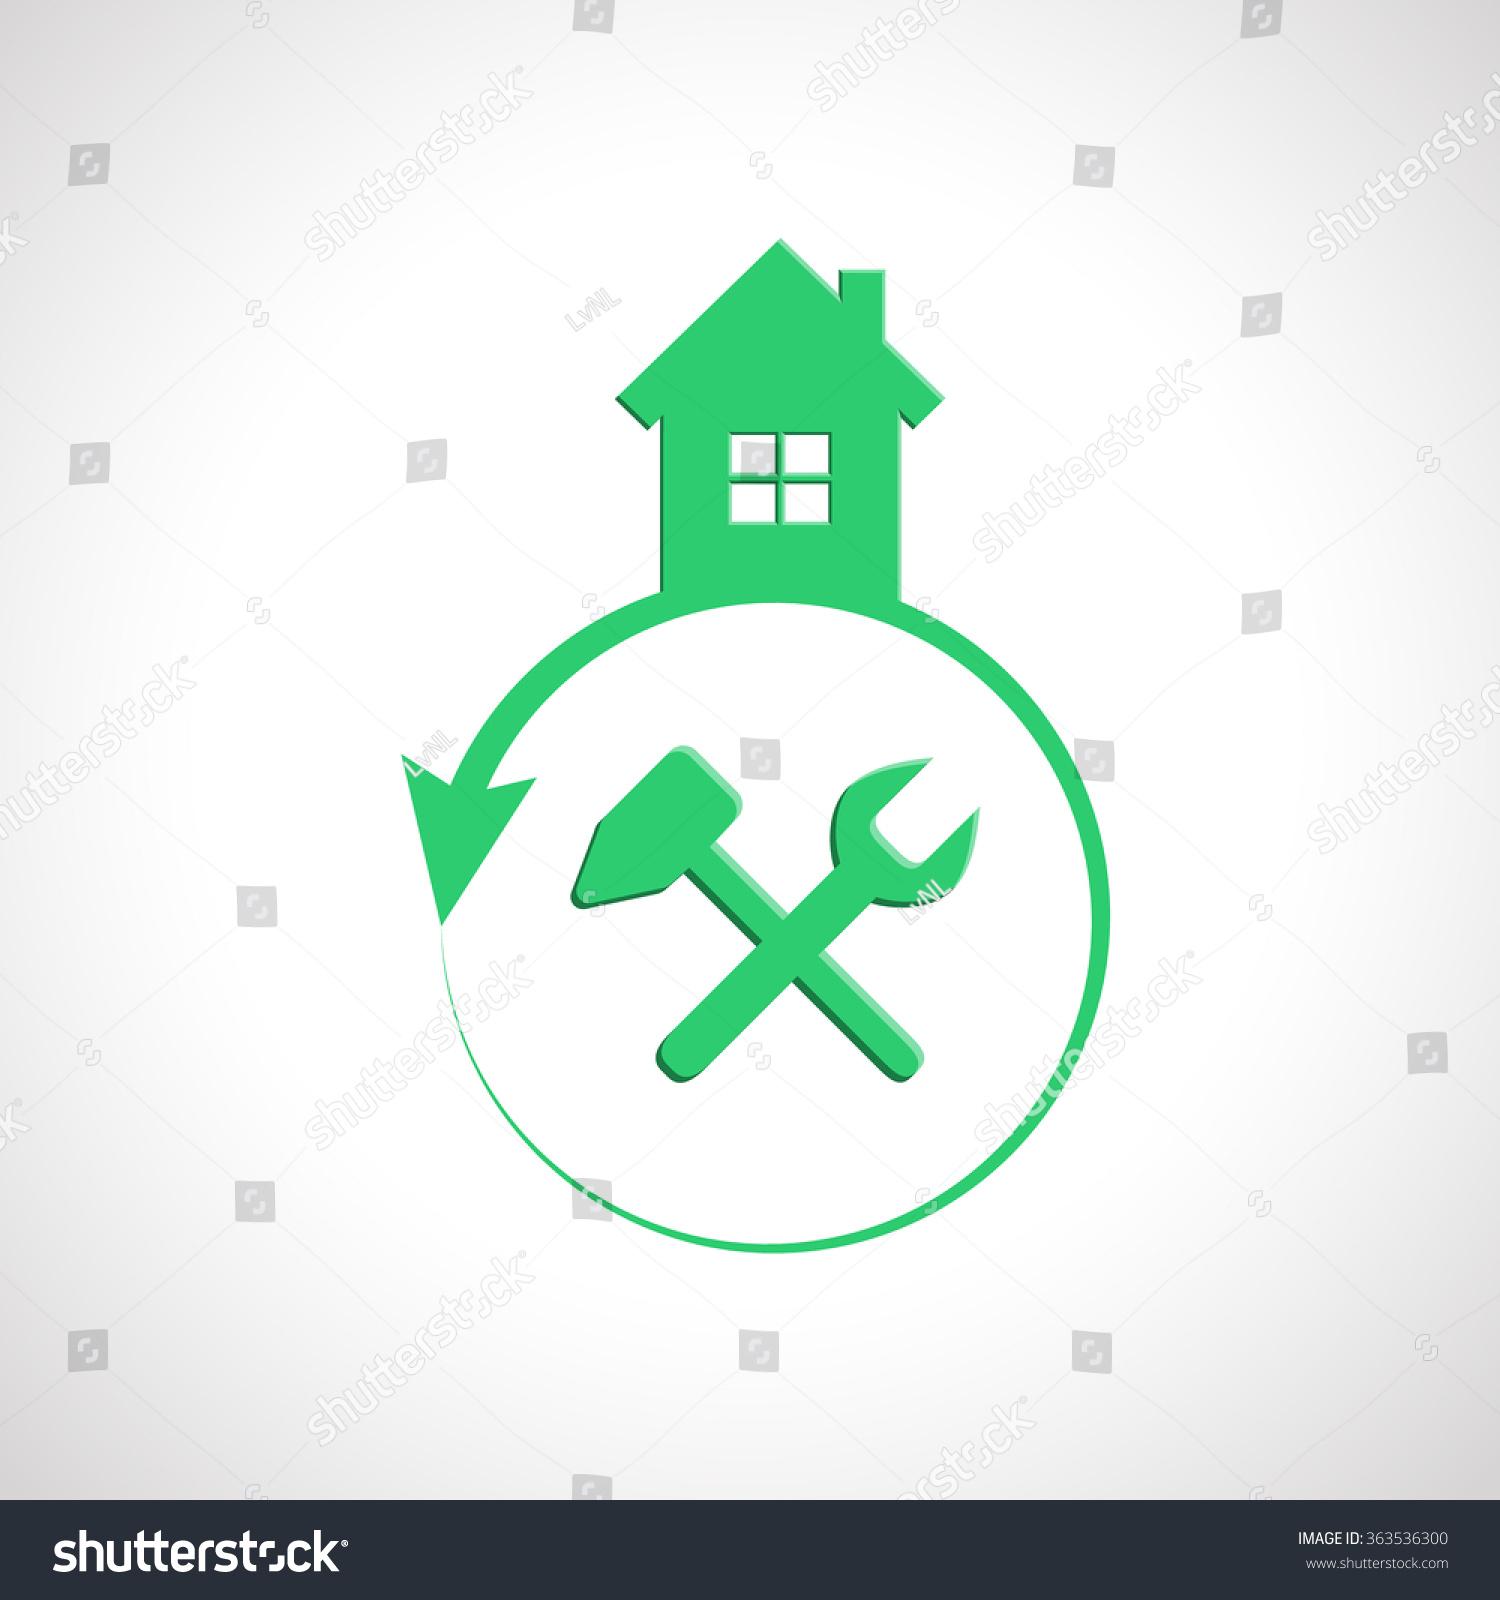 House logo design tools building maintenance stock vector for Home architecture tools